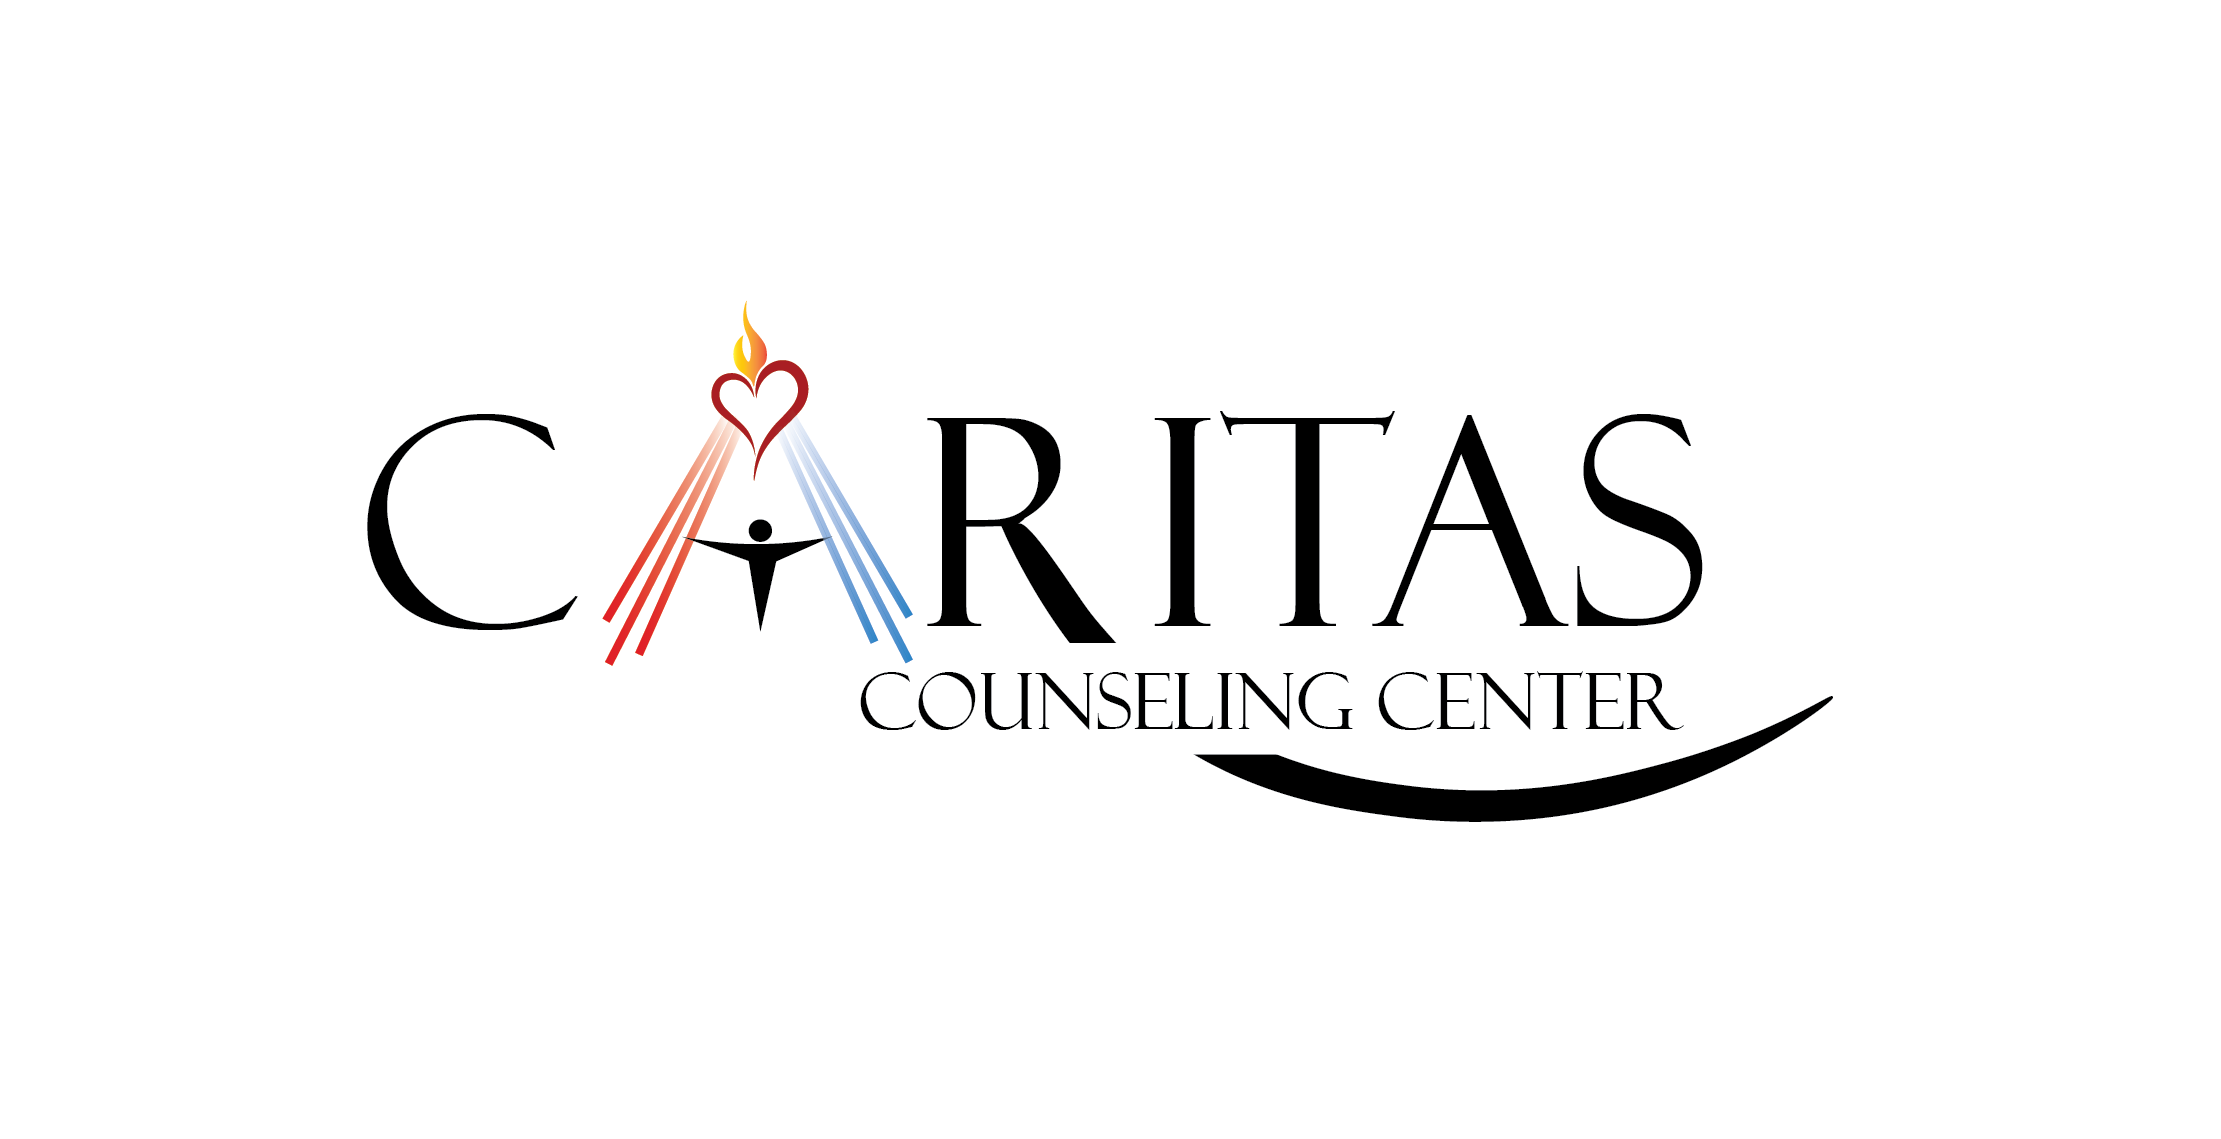 Caritas LOGO 1 final (2).png